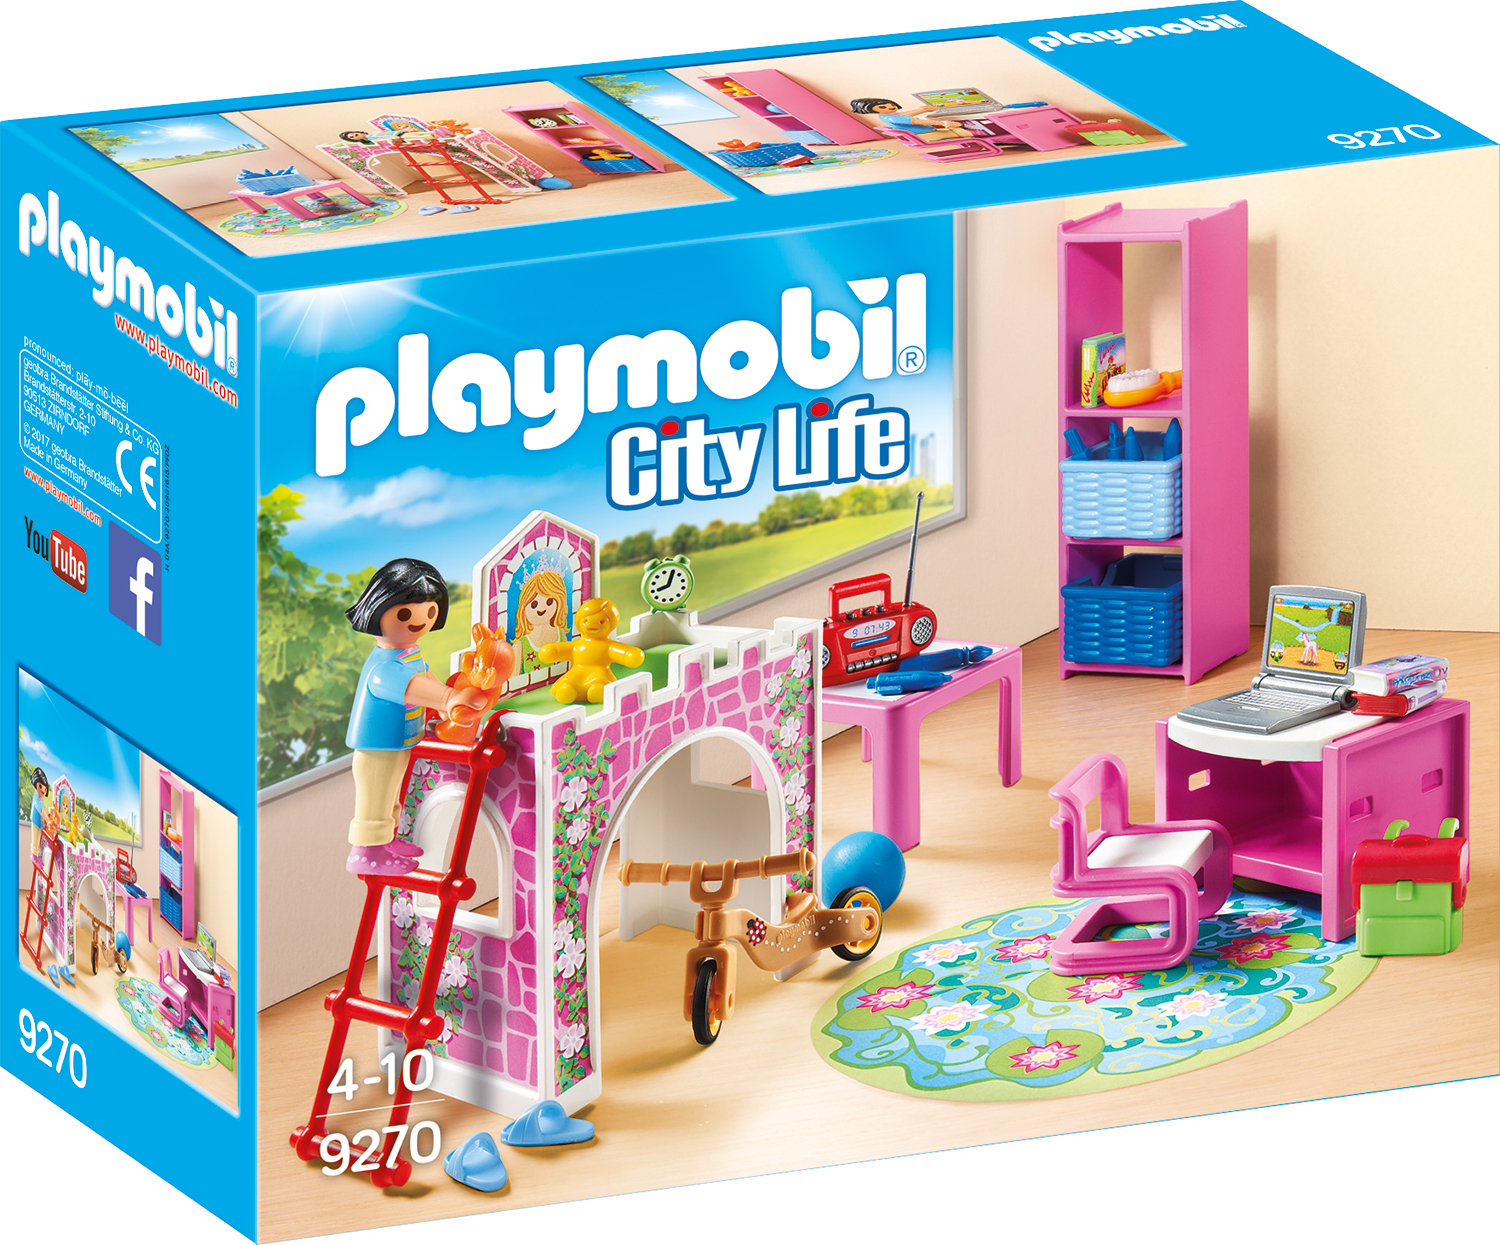 Playmobil das sind die trends 2017 mytoys blog for Salle a manger playmobil city life